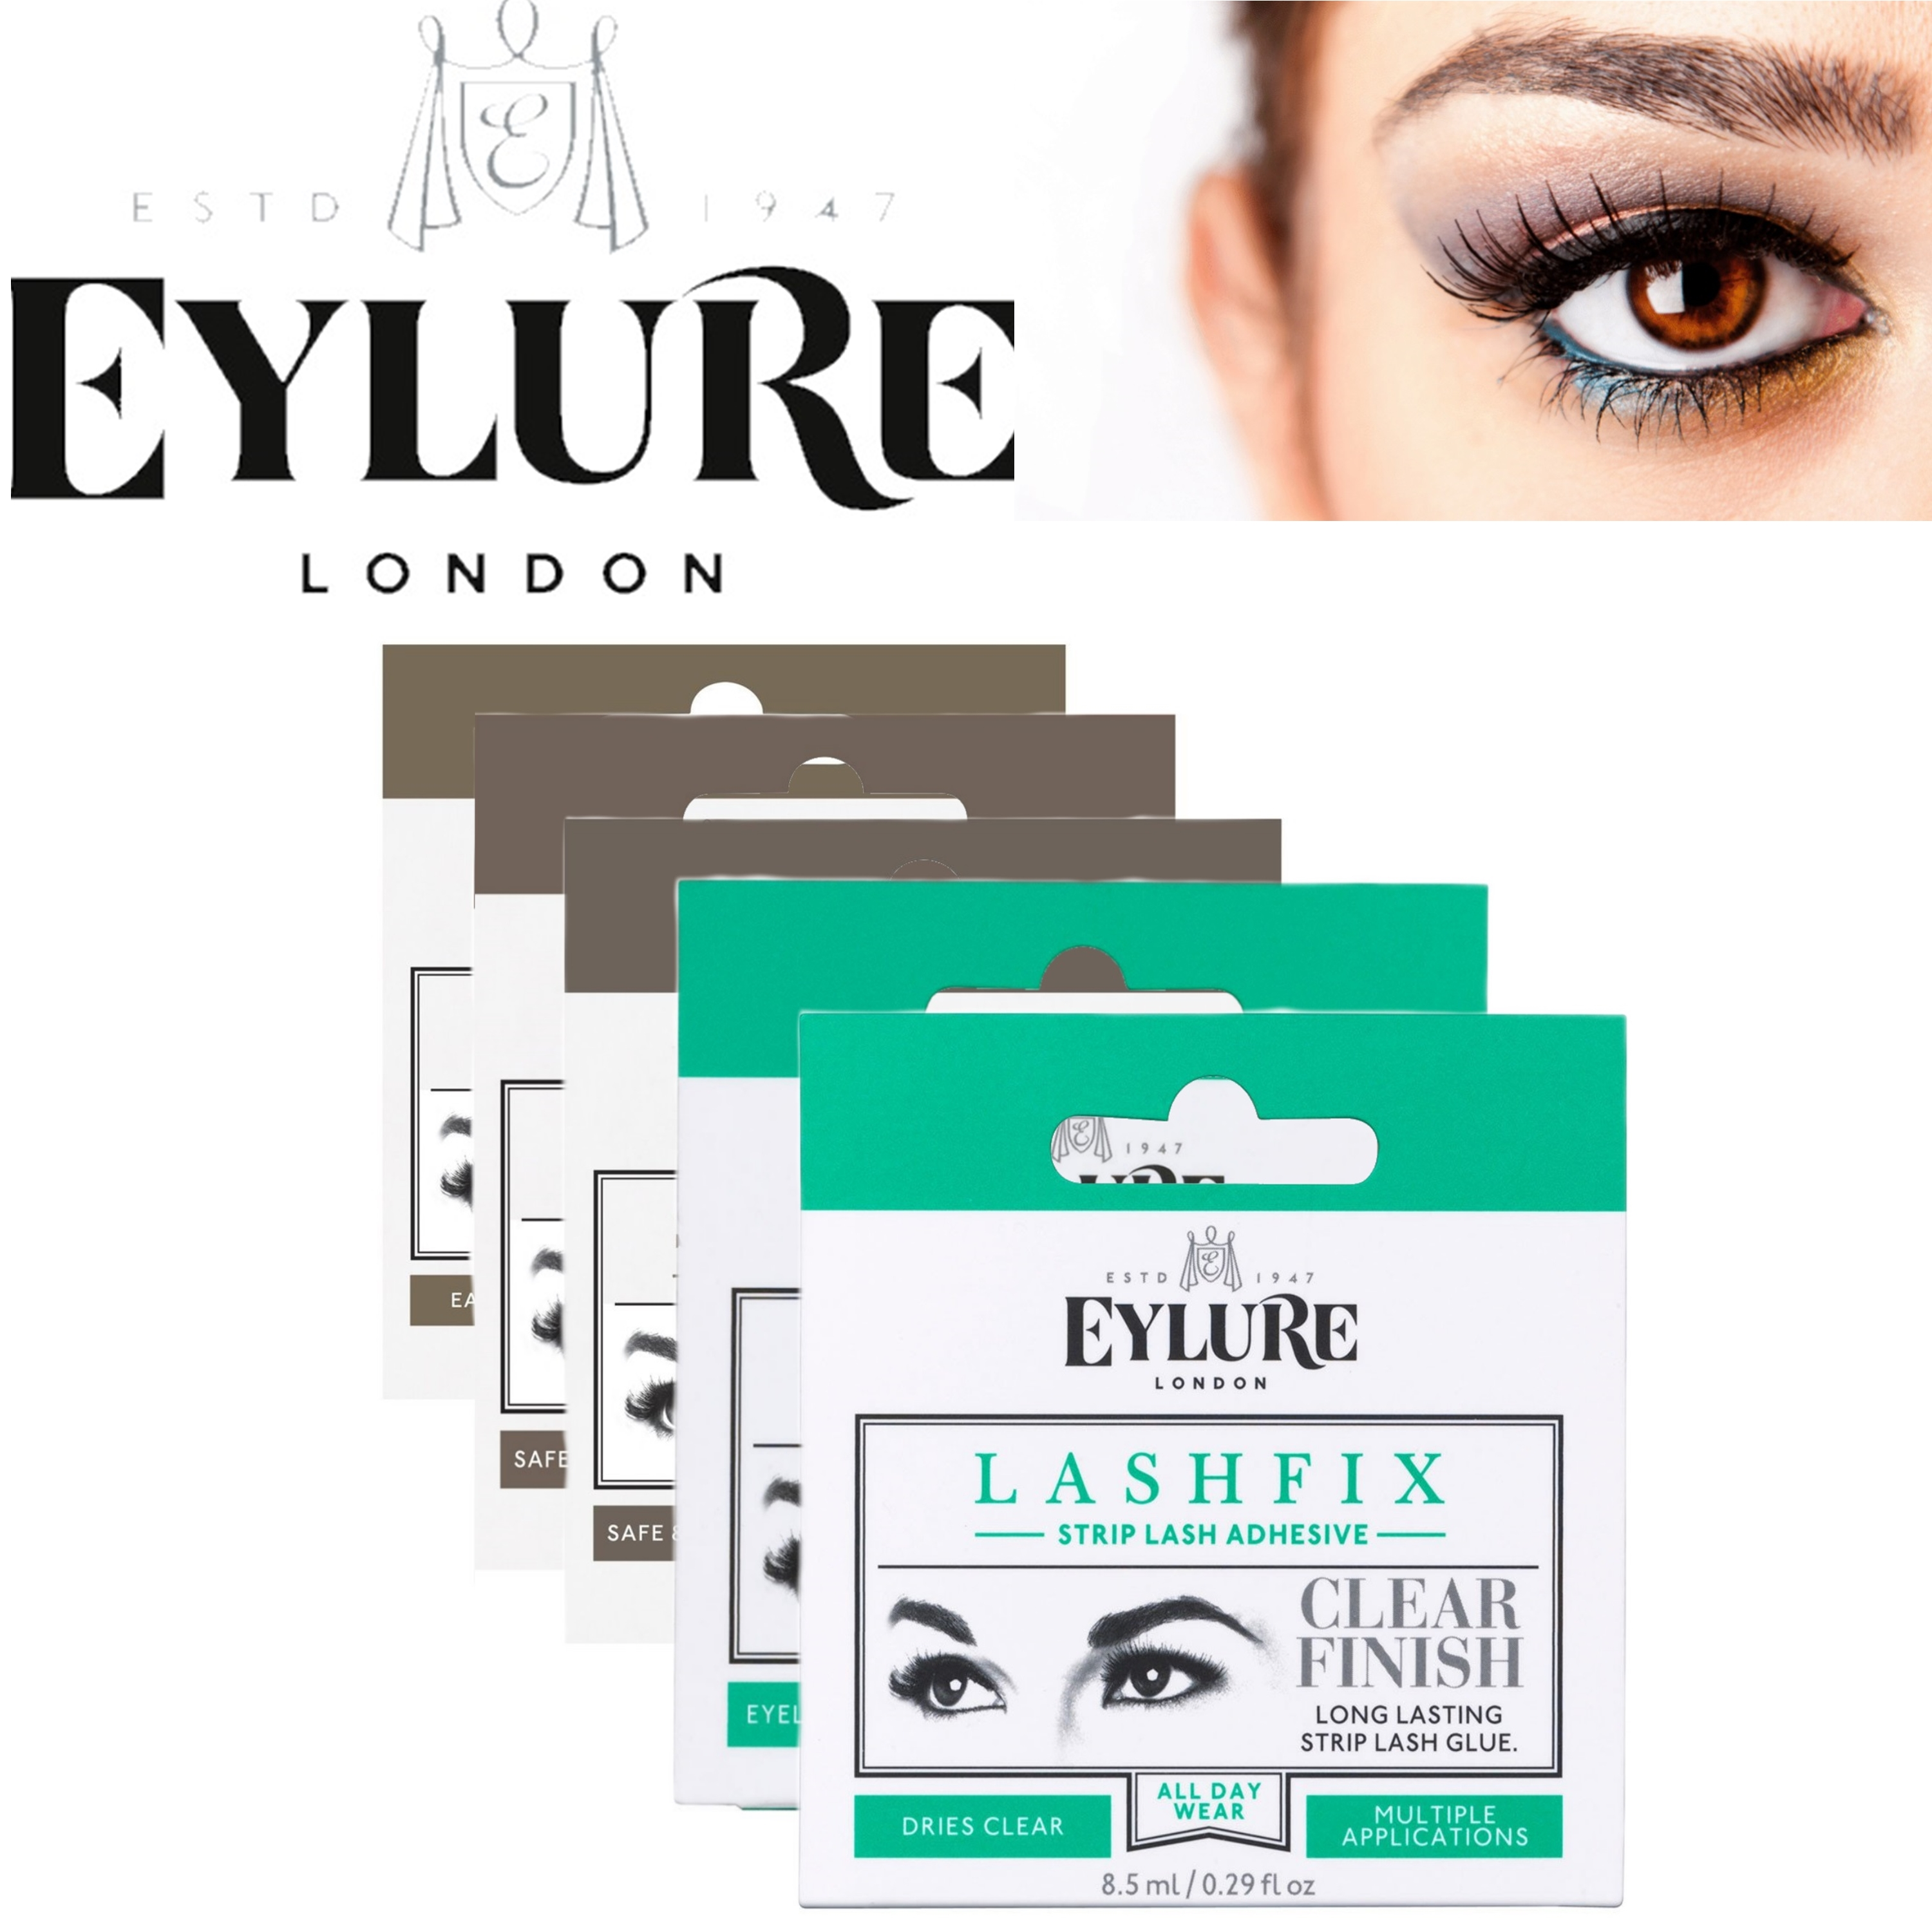 EYLURE Lashfix Ladies Quick Dry Long Lasting False Eye Lash Glue / Glue Remover